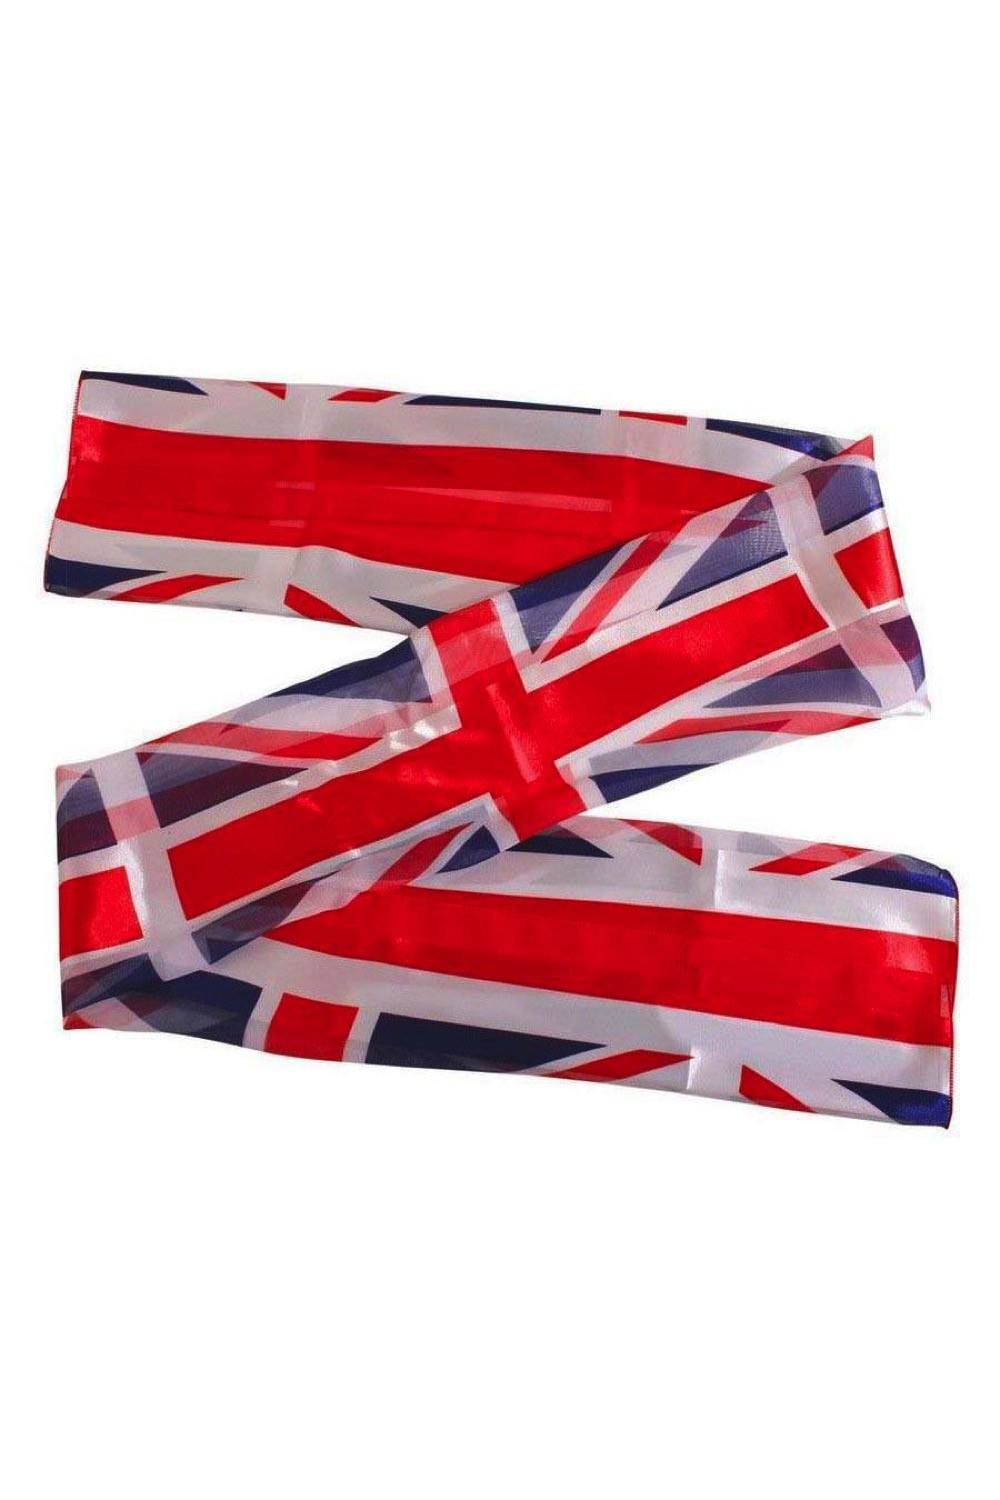 Union Jack Scarf FRONT